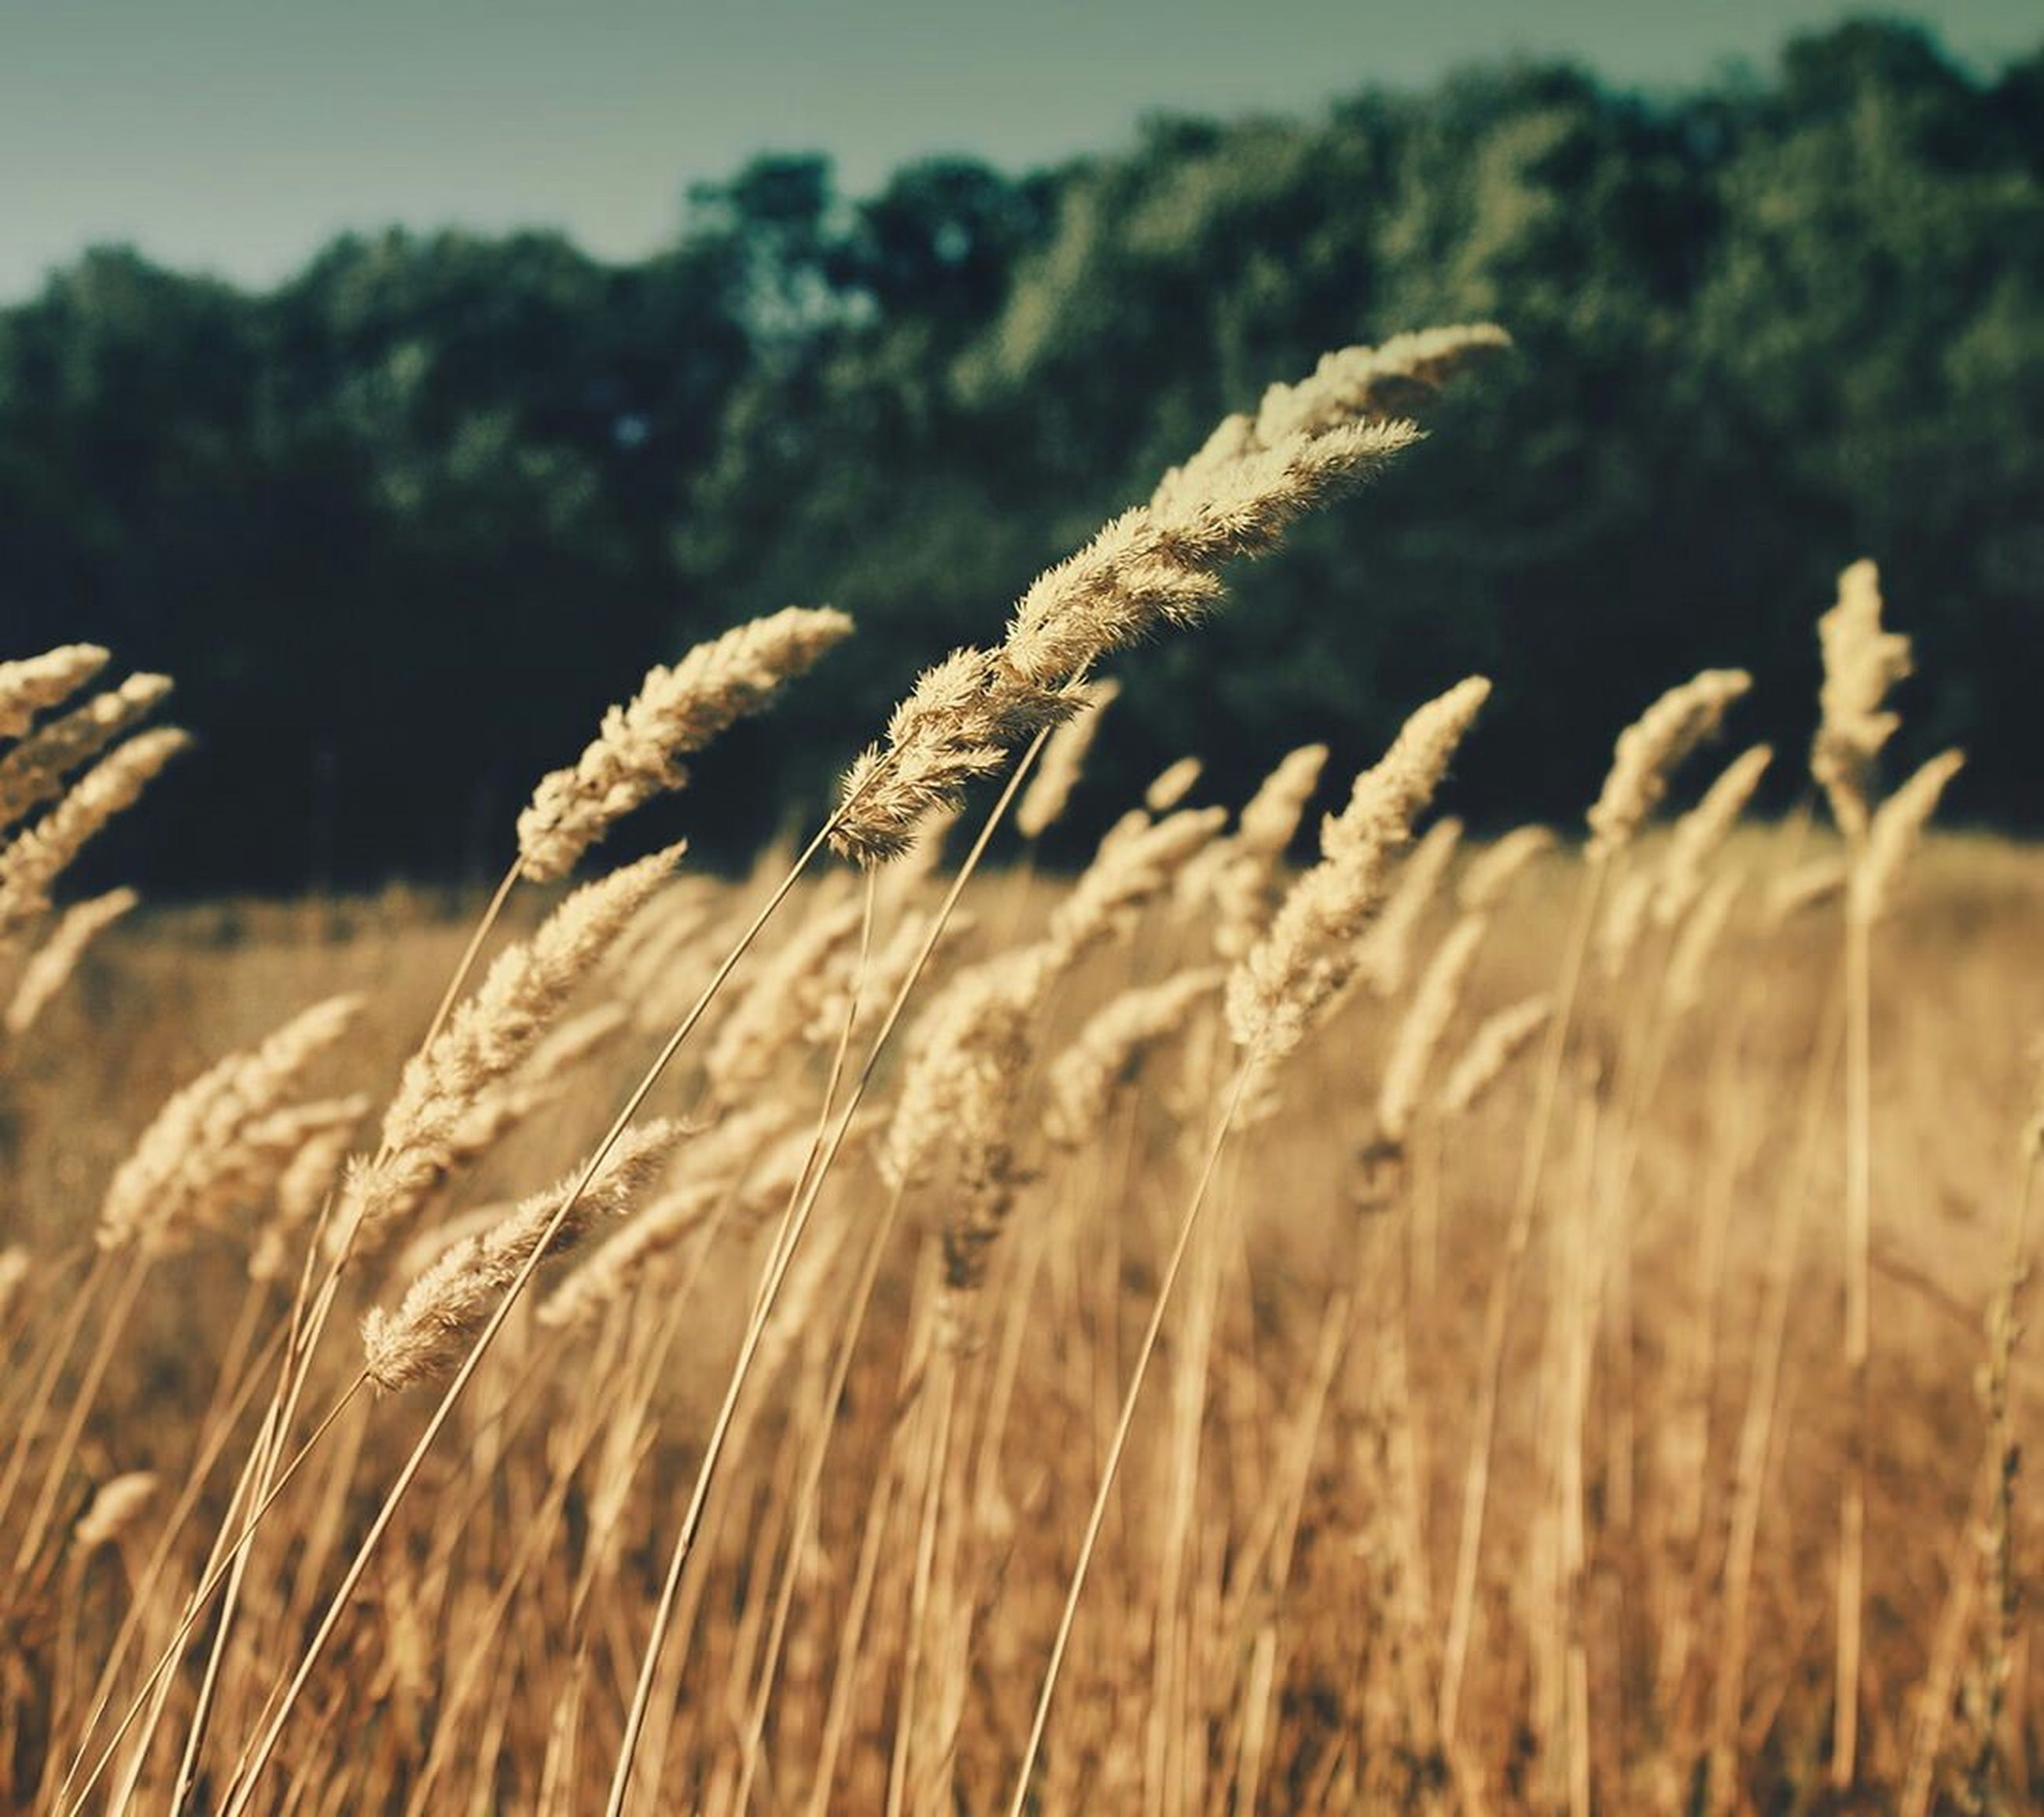 growth, focus on foreground, close-up, selective focus, nature, field, plant, tranquility, beauty in nature, grass, agriculture, wheat, growing, day, crop, cereal plant, dry, outdoors, farm, no people